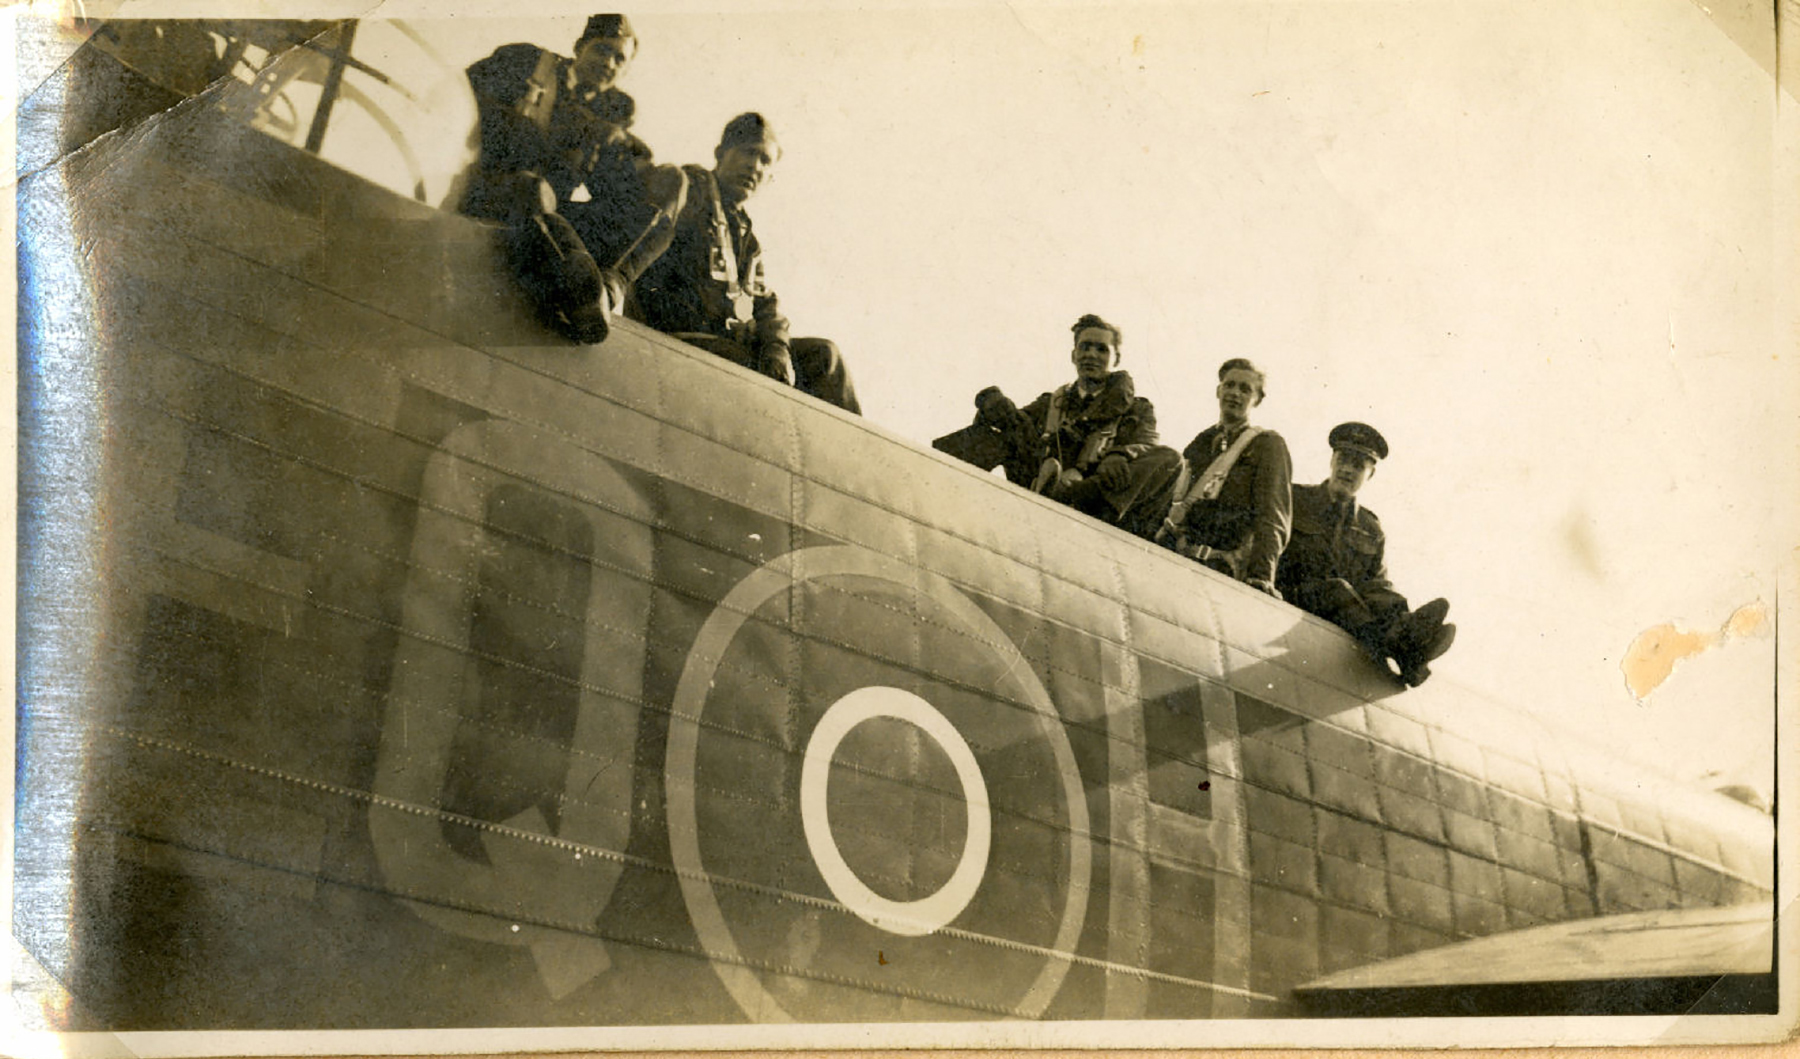 In a sepia-tone photograph, five men wearing old-style flight suits sit along the top of the fuselage behind the cockpit of a vintage aircraft.